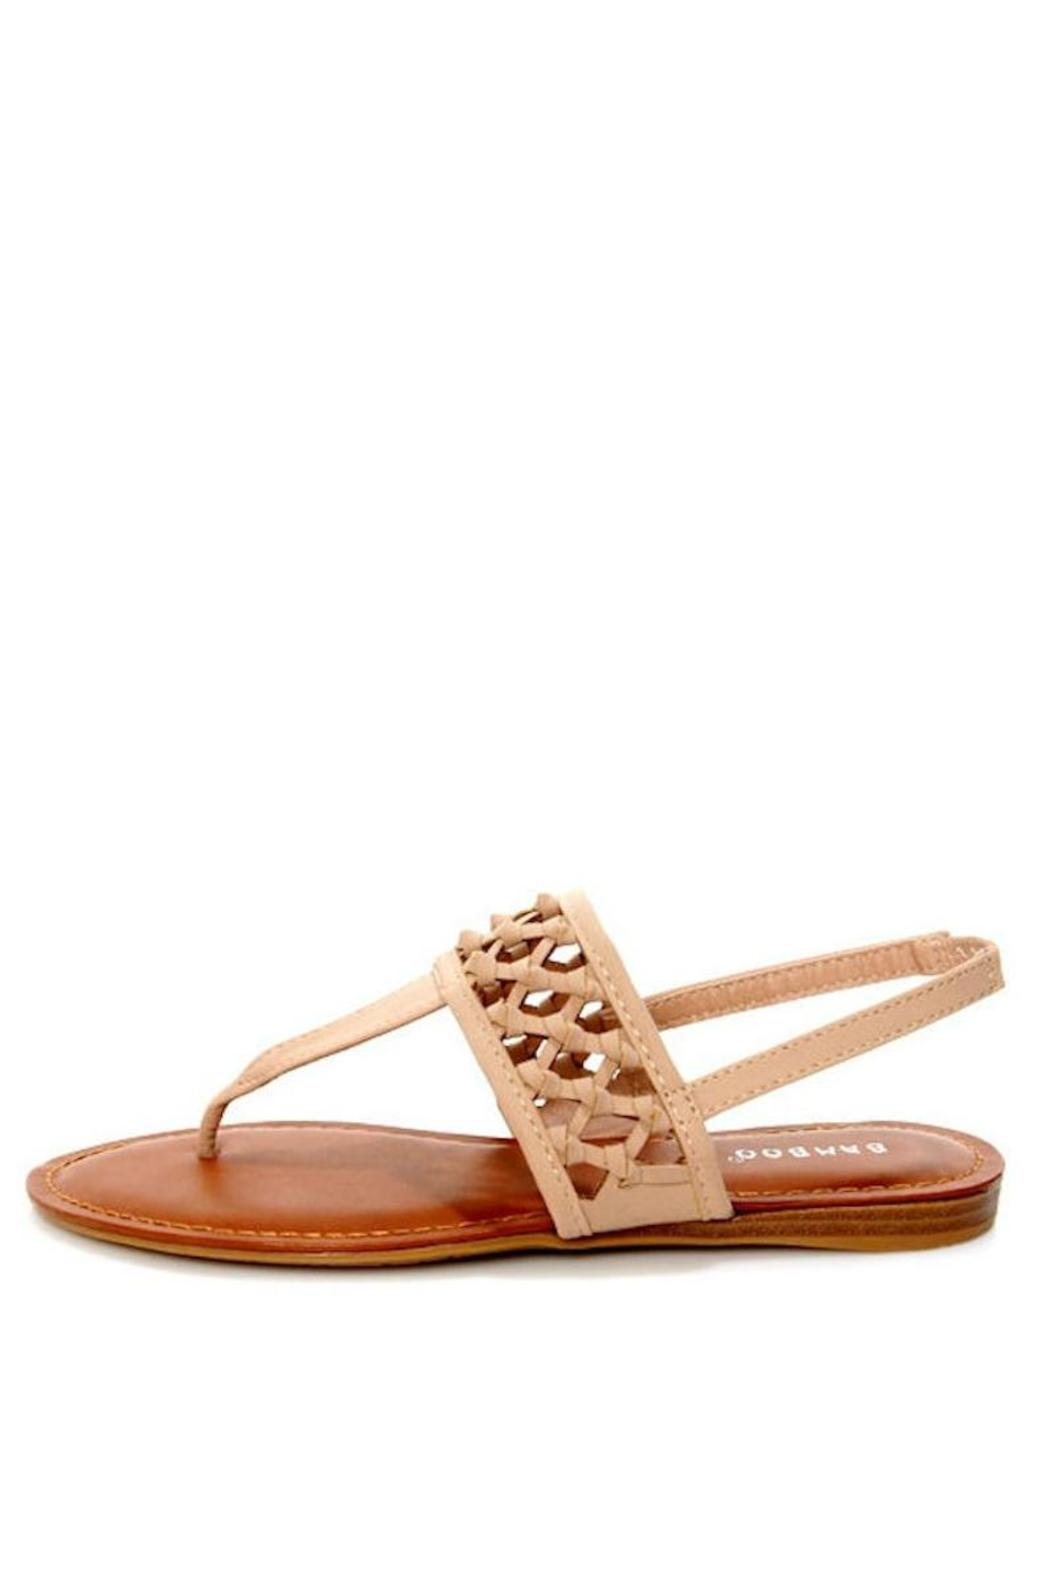 d50f8eca7c79bc Bamboo Knotted Thong Sandals from California by That s Cherry ...